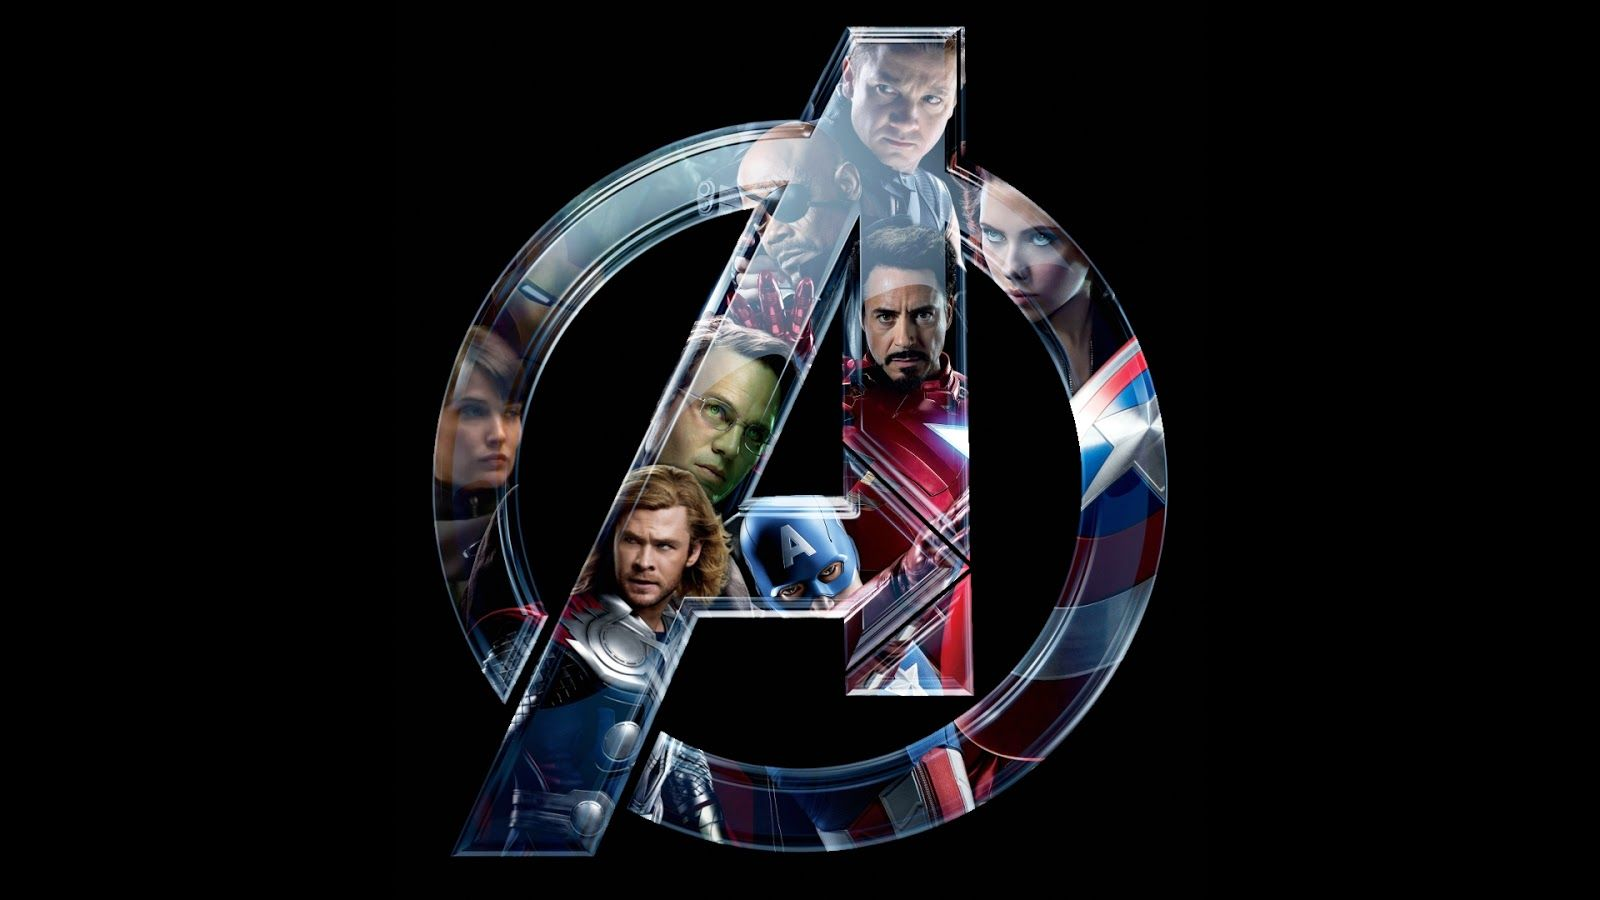 marvel avengers logo wallpapers top free marvel avengers logo backgrounds wallpaperaccess marvel avengers logo wallpapers top